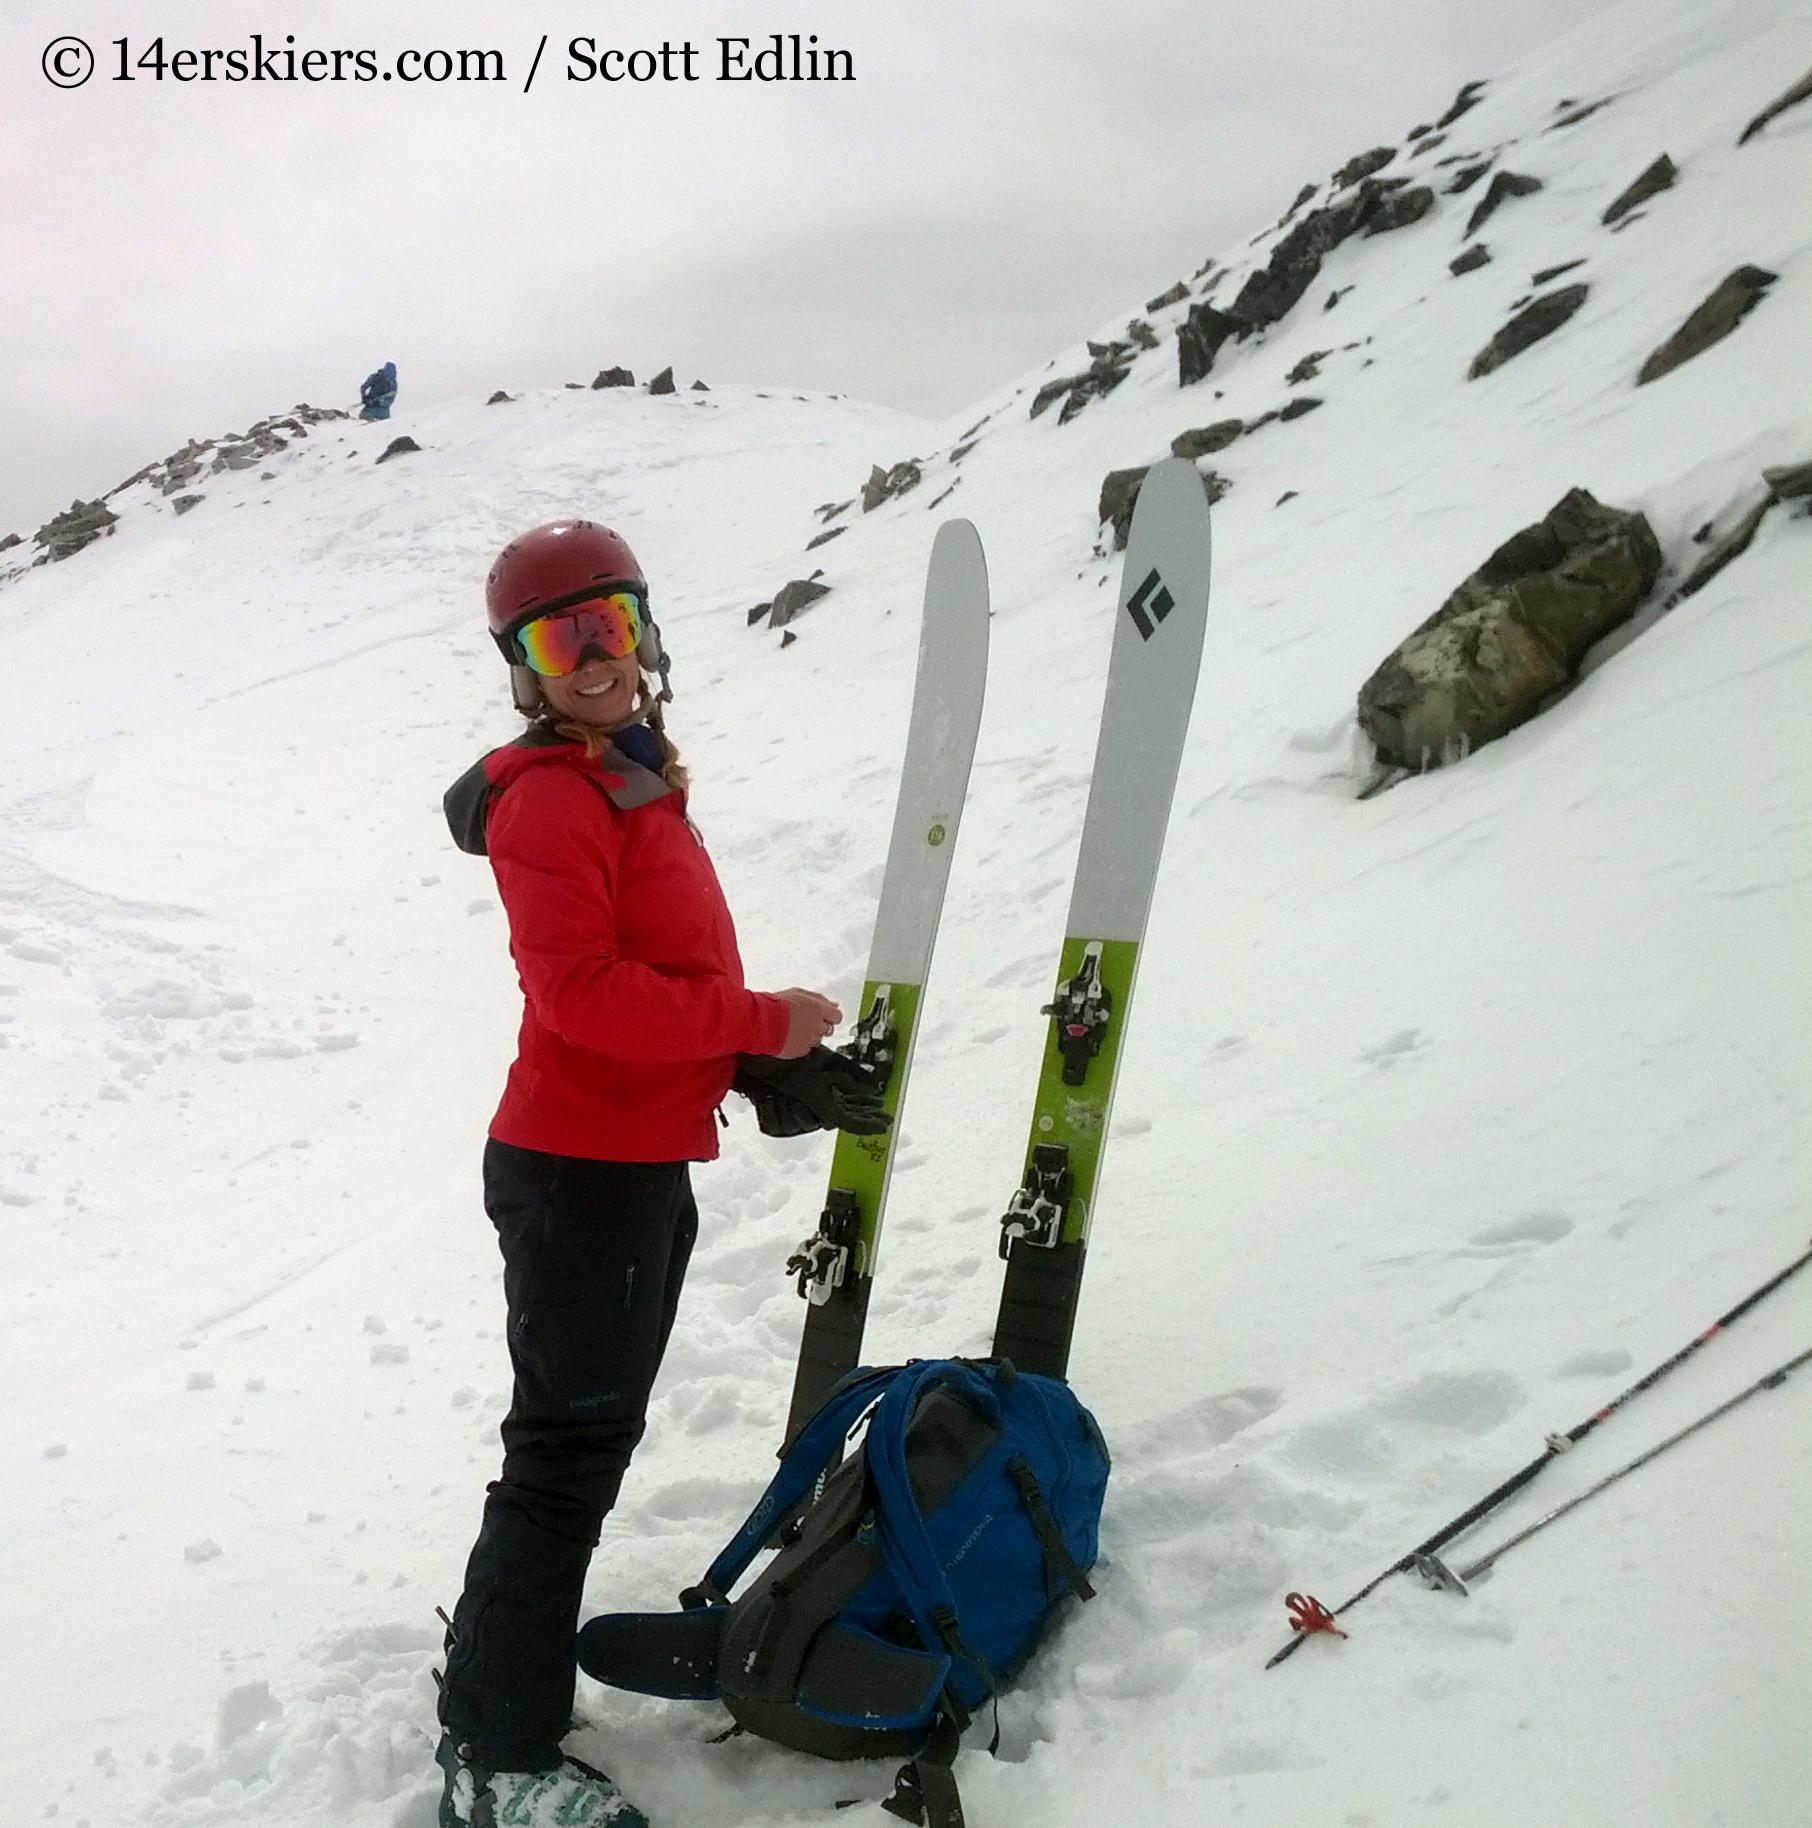 76f28cafdd Gear Review  Black Diamond Helio 116 Skis - 14erskiers.com